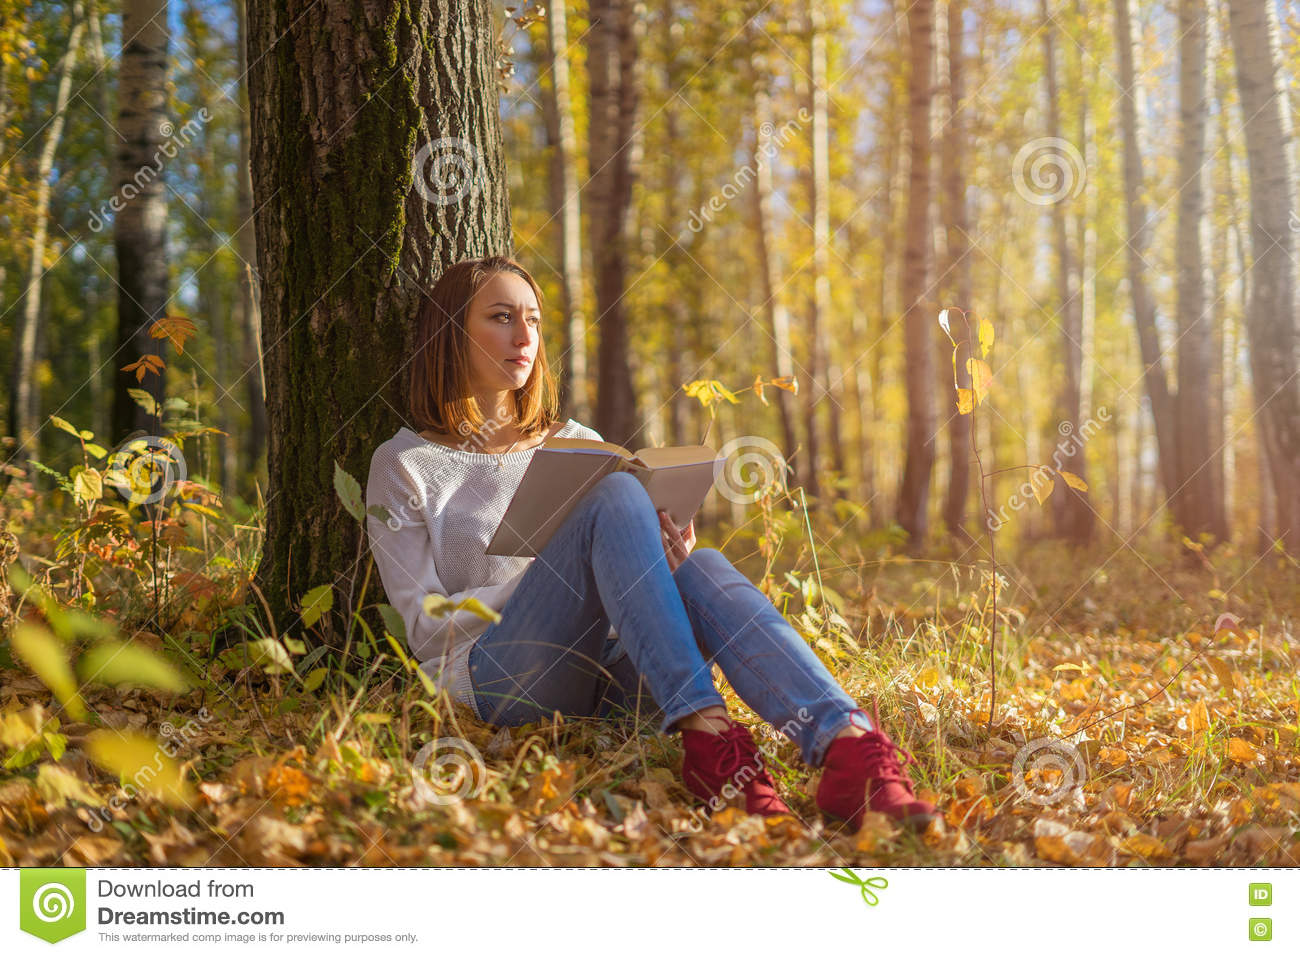 Girl sitting under a tree with a book